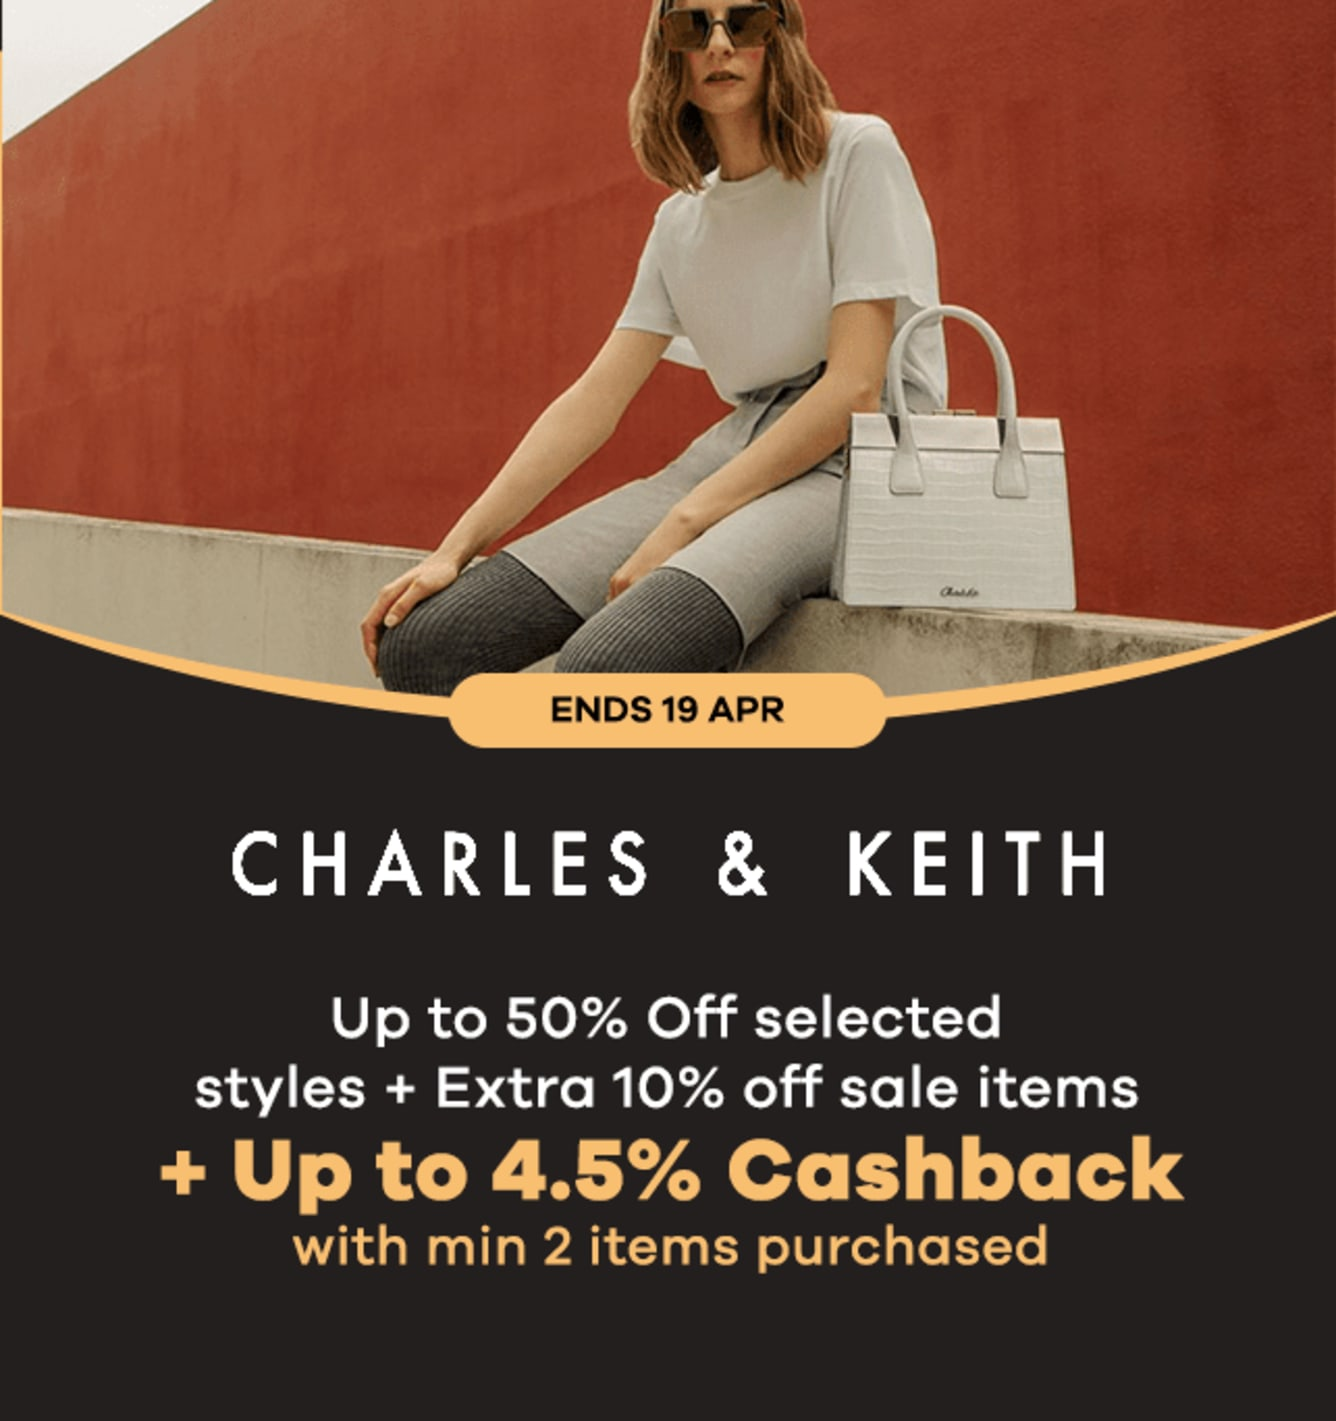 Charles & Keith: Up to 4.5% Cashback